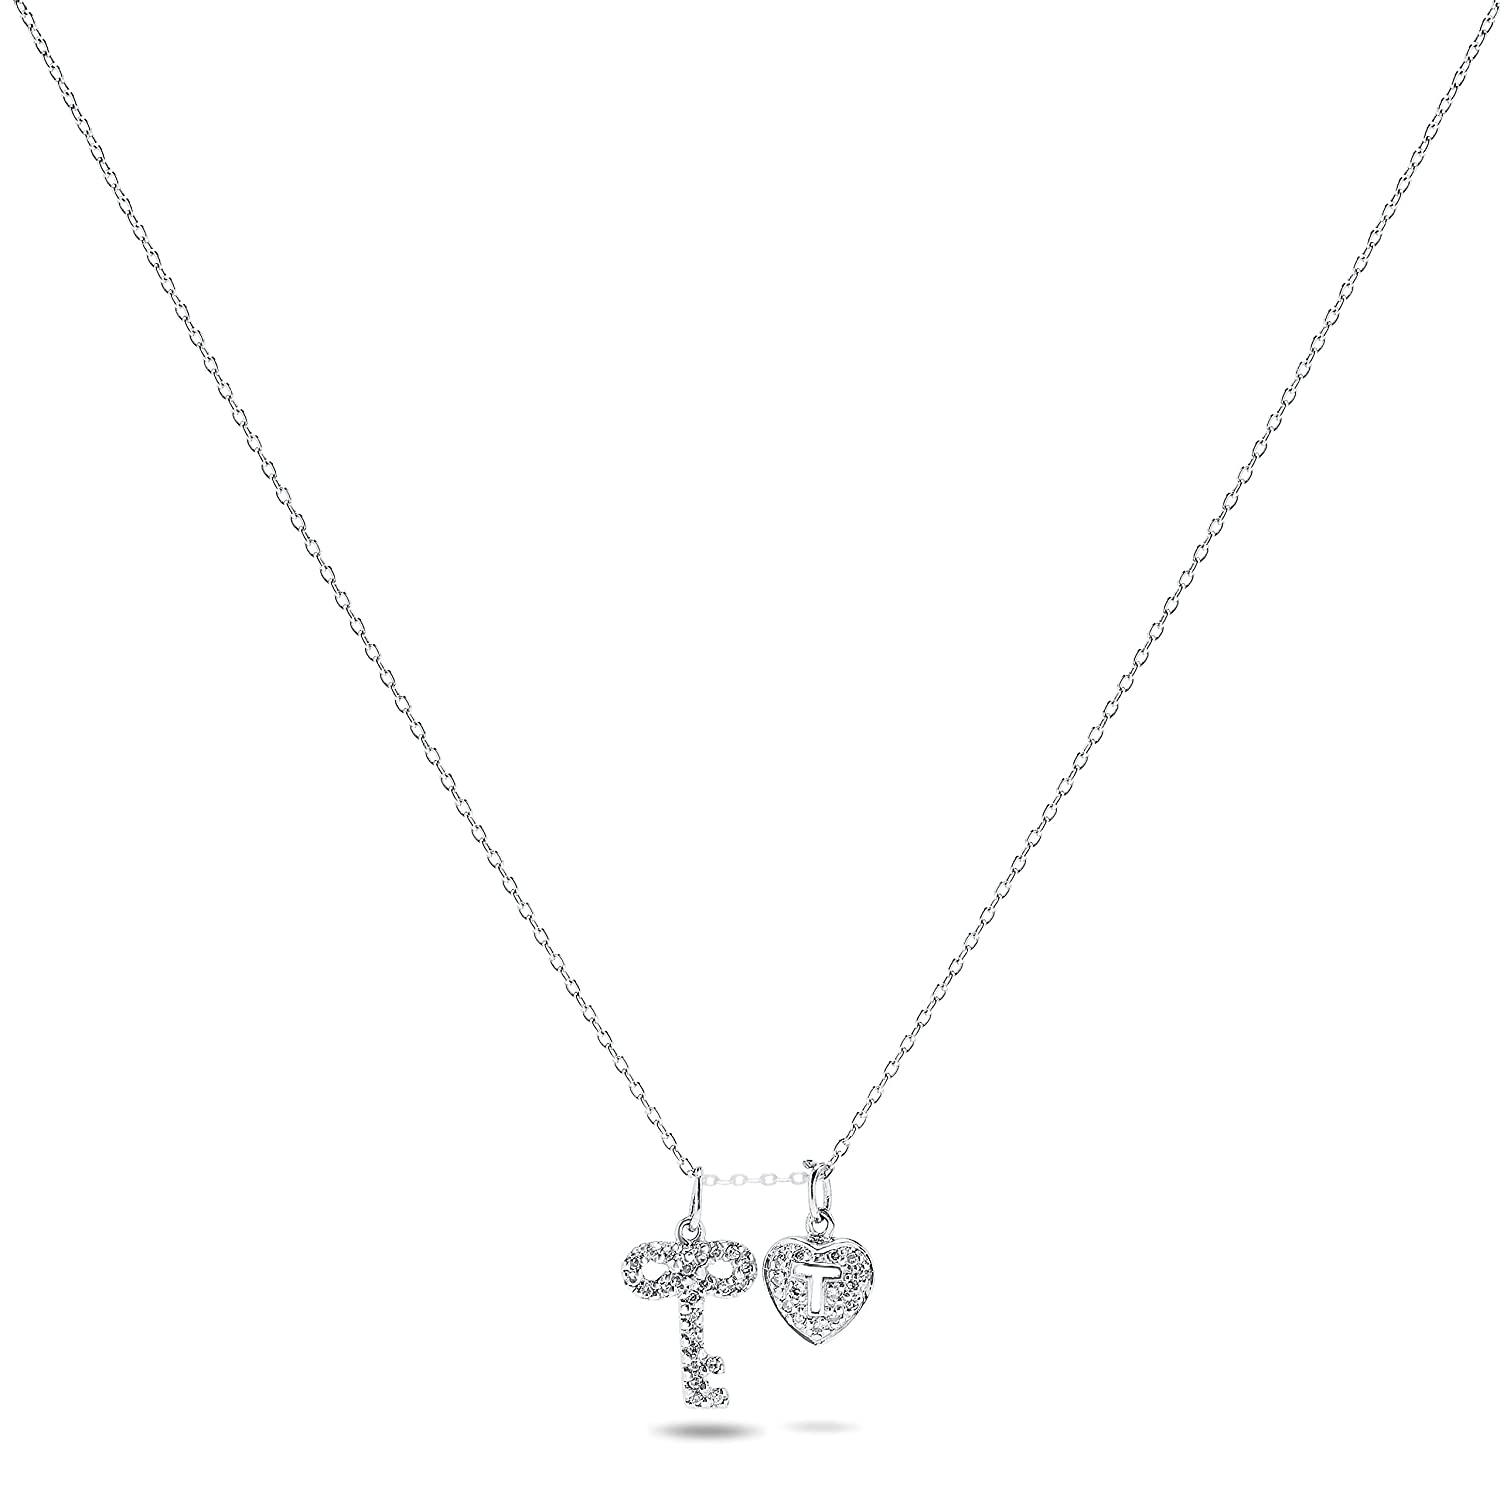 1//5 Carat Diamond Heart And Ket Pendant Necklace In .925 Sterling Silver